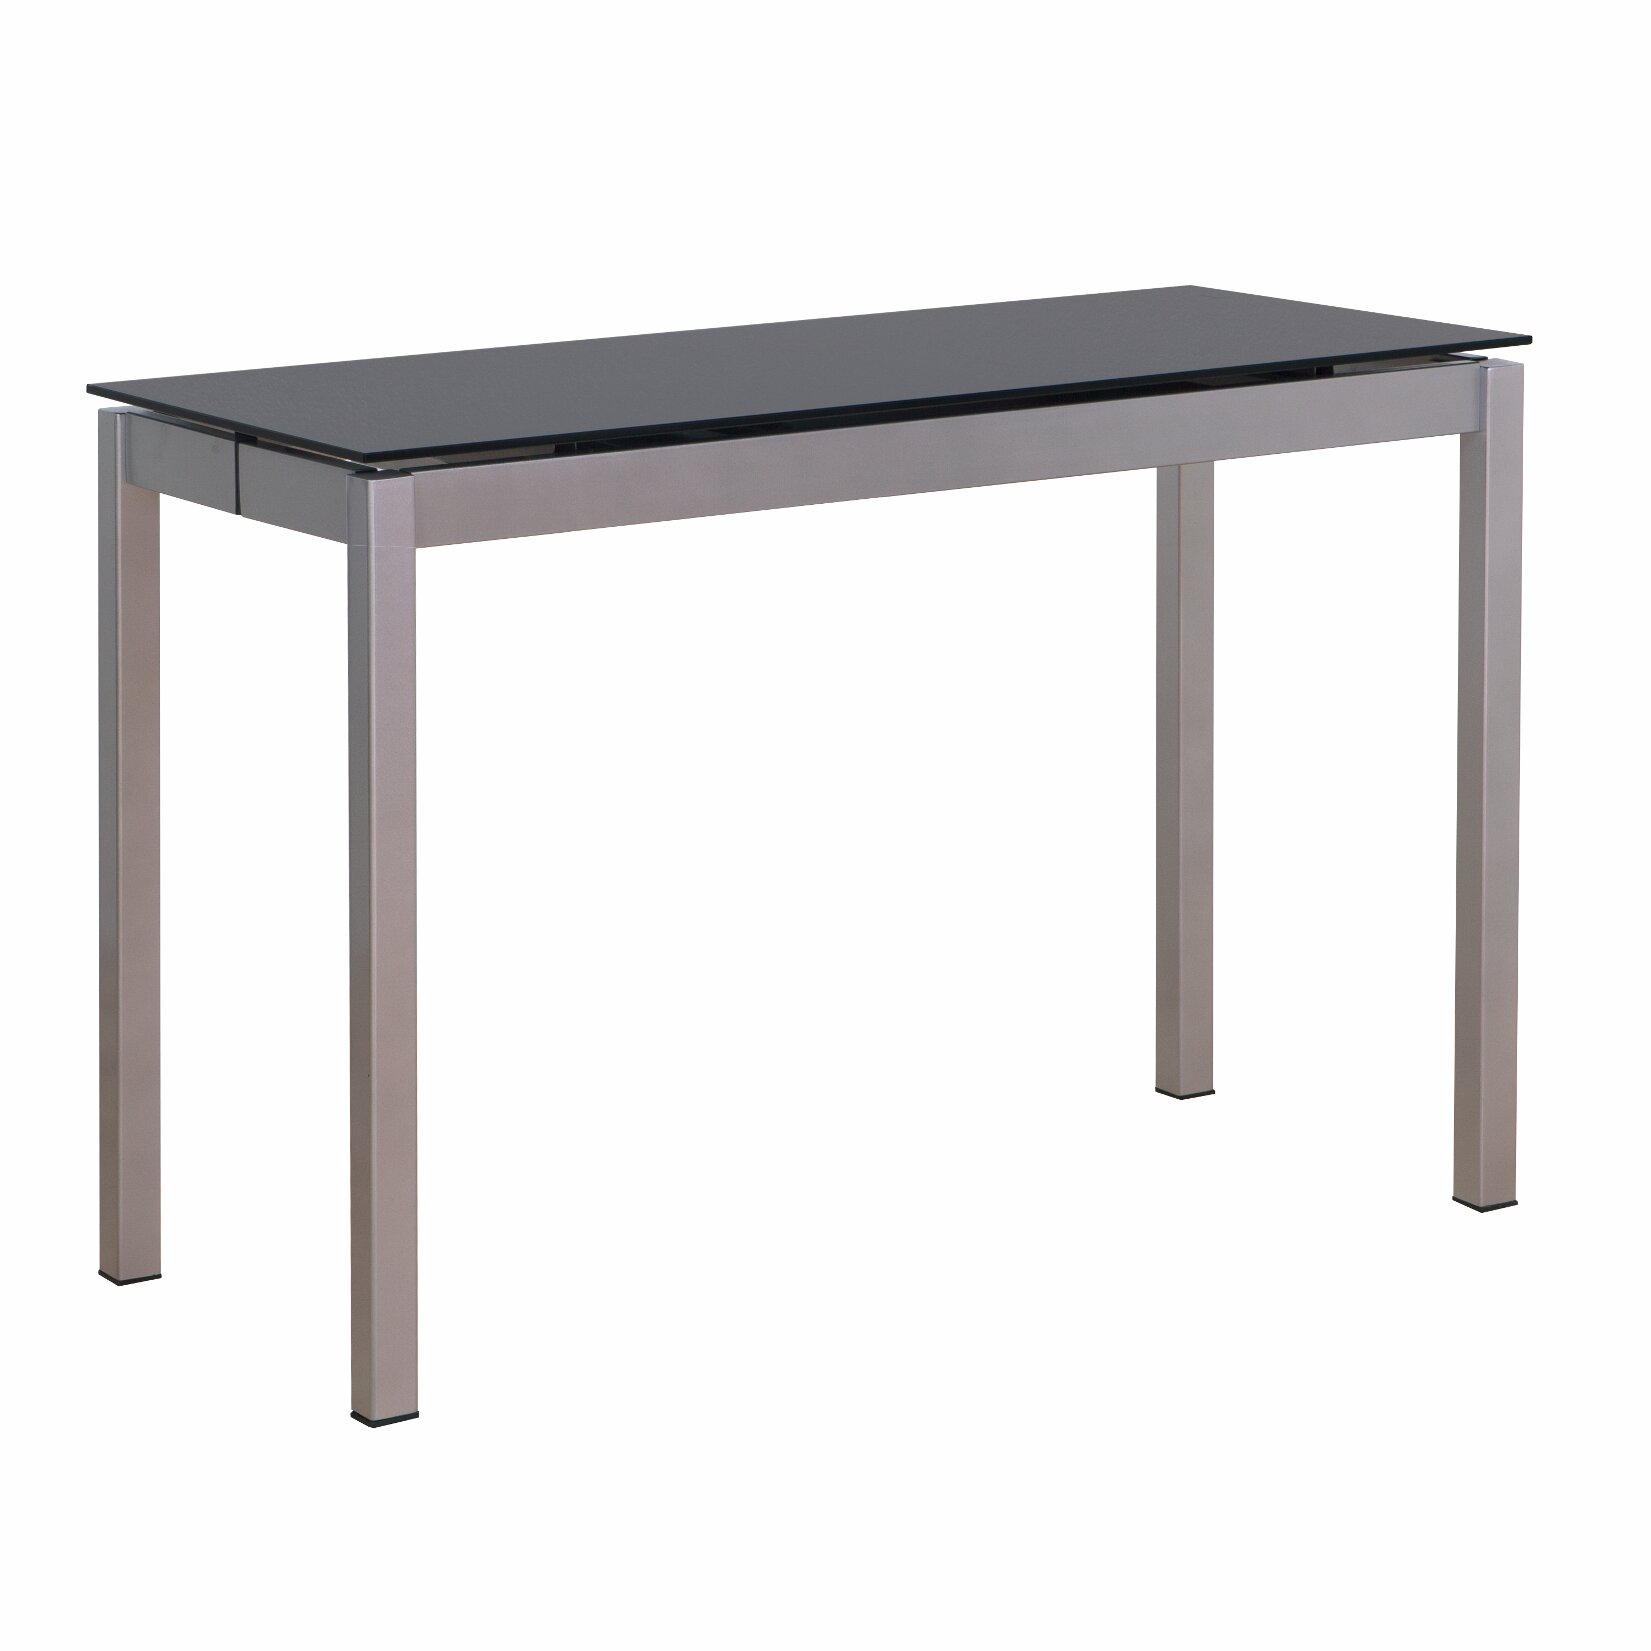 creative furniture orlando dining table reviews wayfair